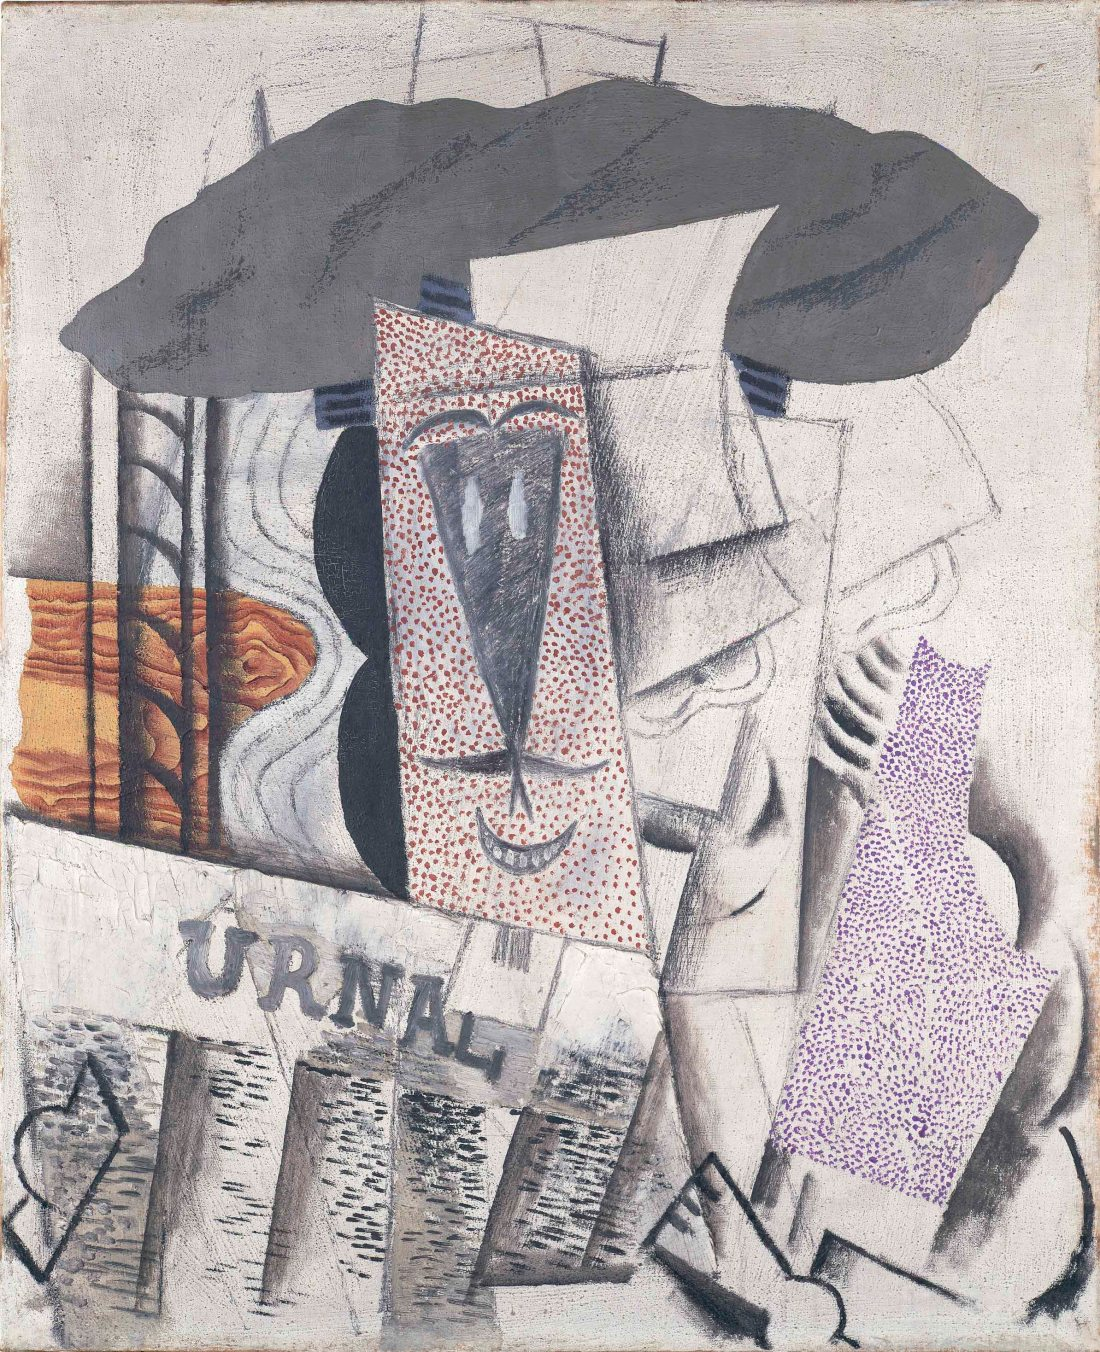 Pablo Picasso, Student with a Newspaper, 1913-14.